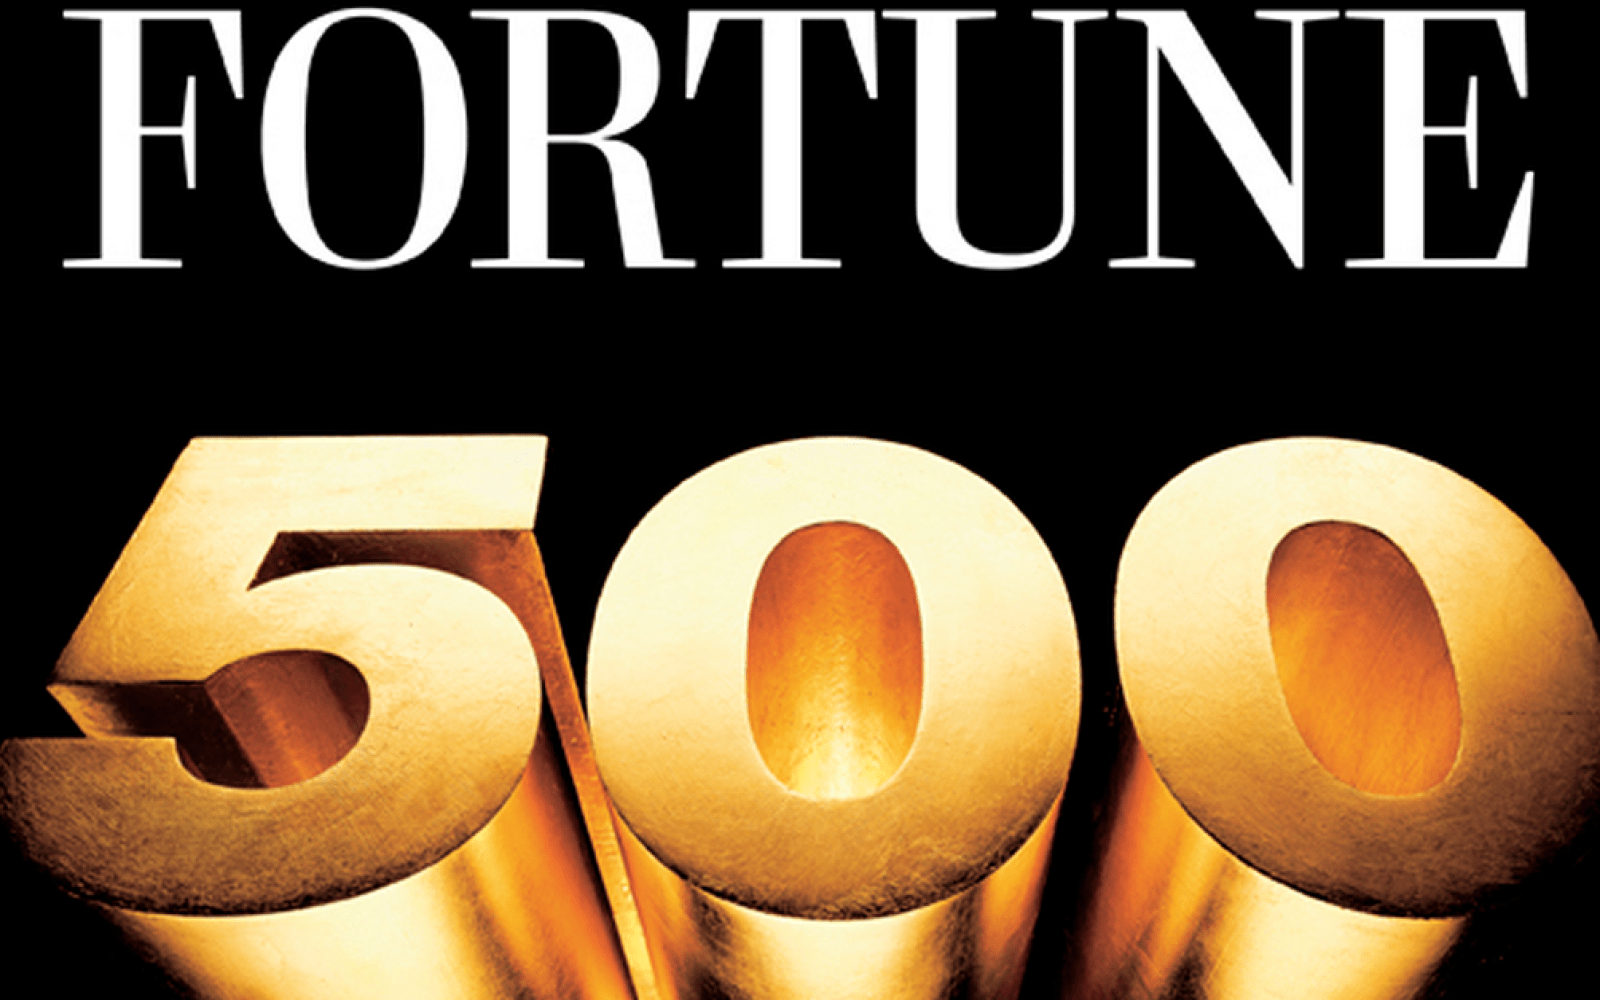 Apple jumps 11 places to land at #6 in Fortune 500, first time in top 10